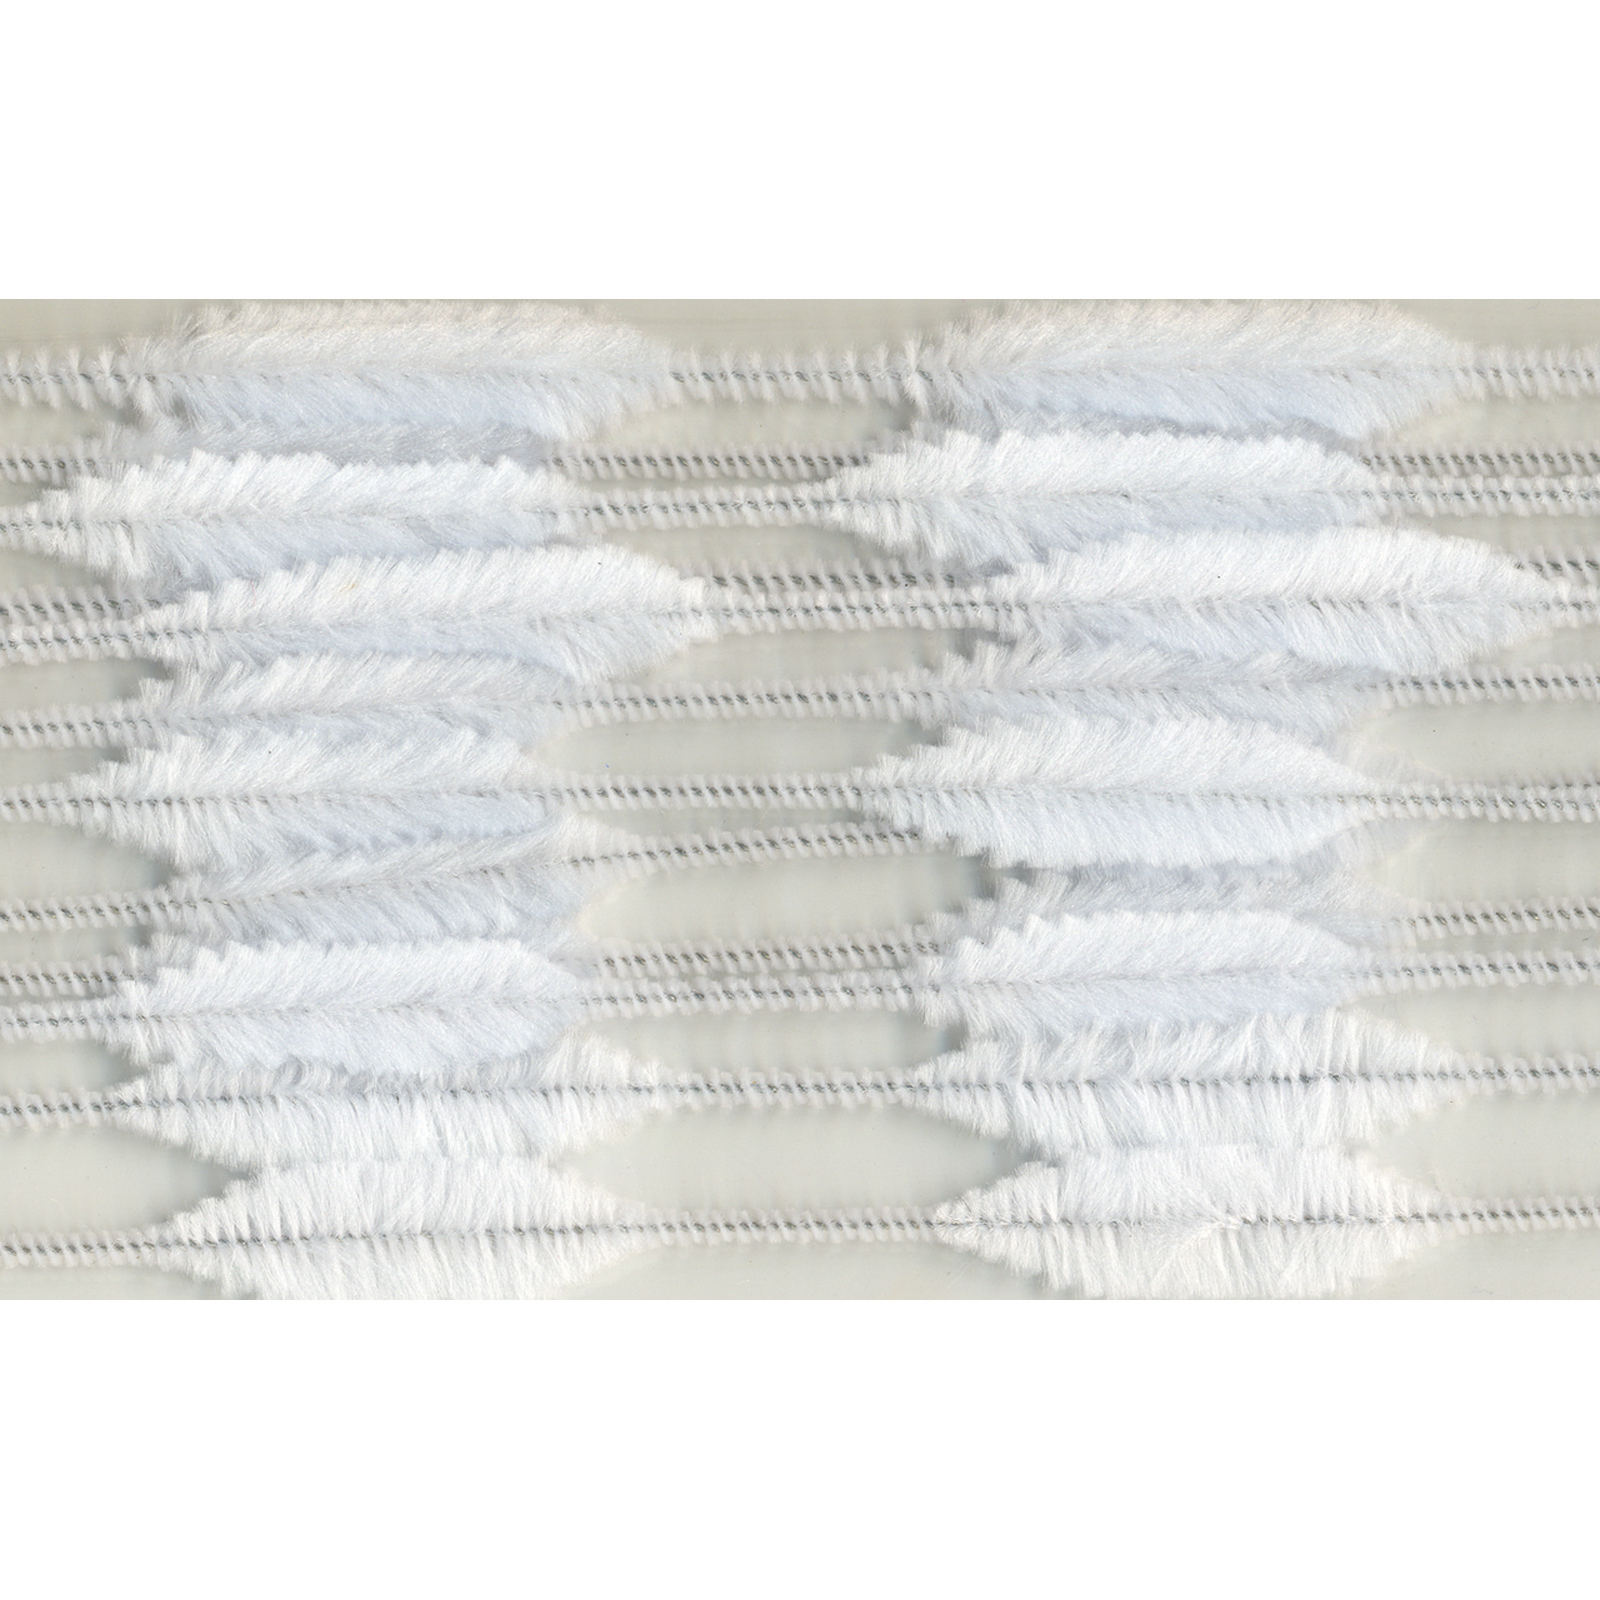 Chenille Bump Stems Pipe Cleaners, White, 15Mm - 1 Pkg